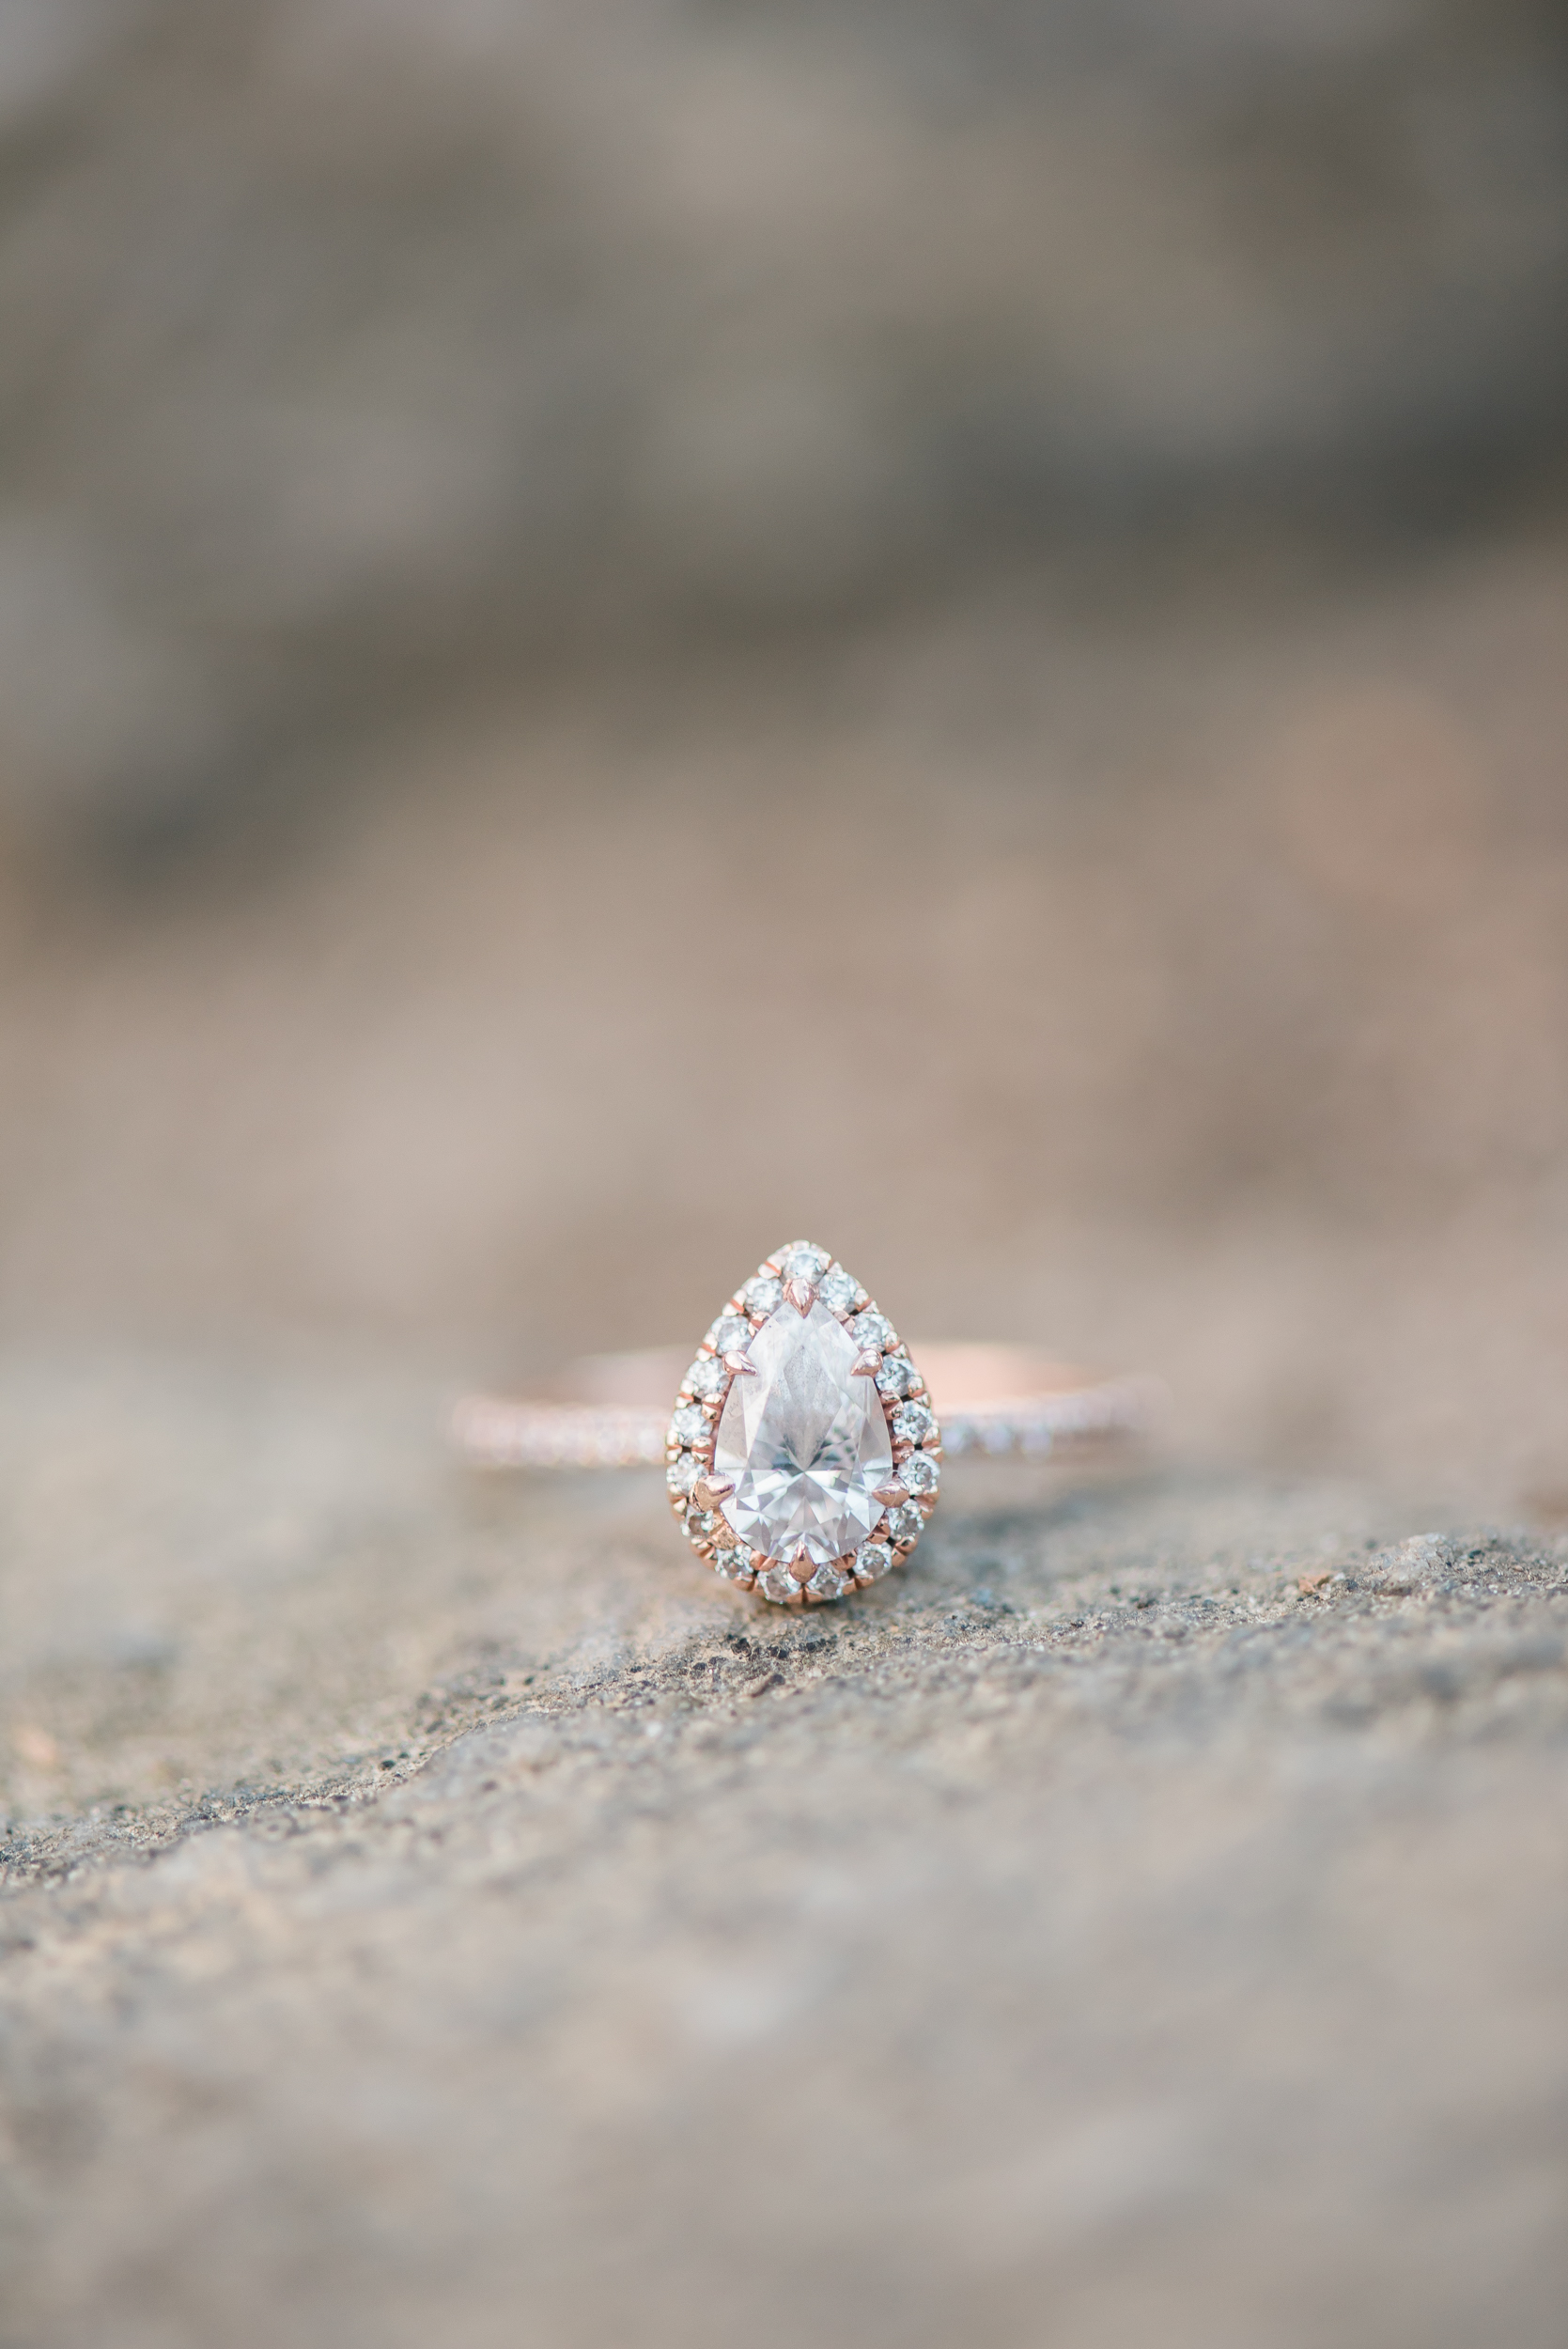 rocks-state-park-engagement-chelsea-blanch-photography-1.jpgrocks-state-park-engagement-chelsea-blanch-photography-14